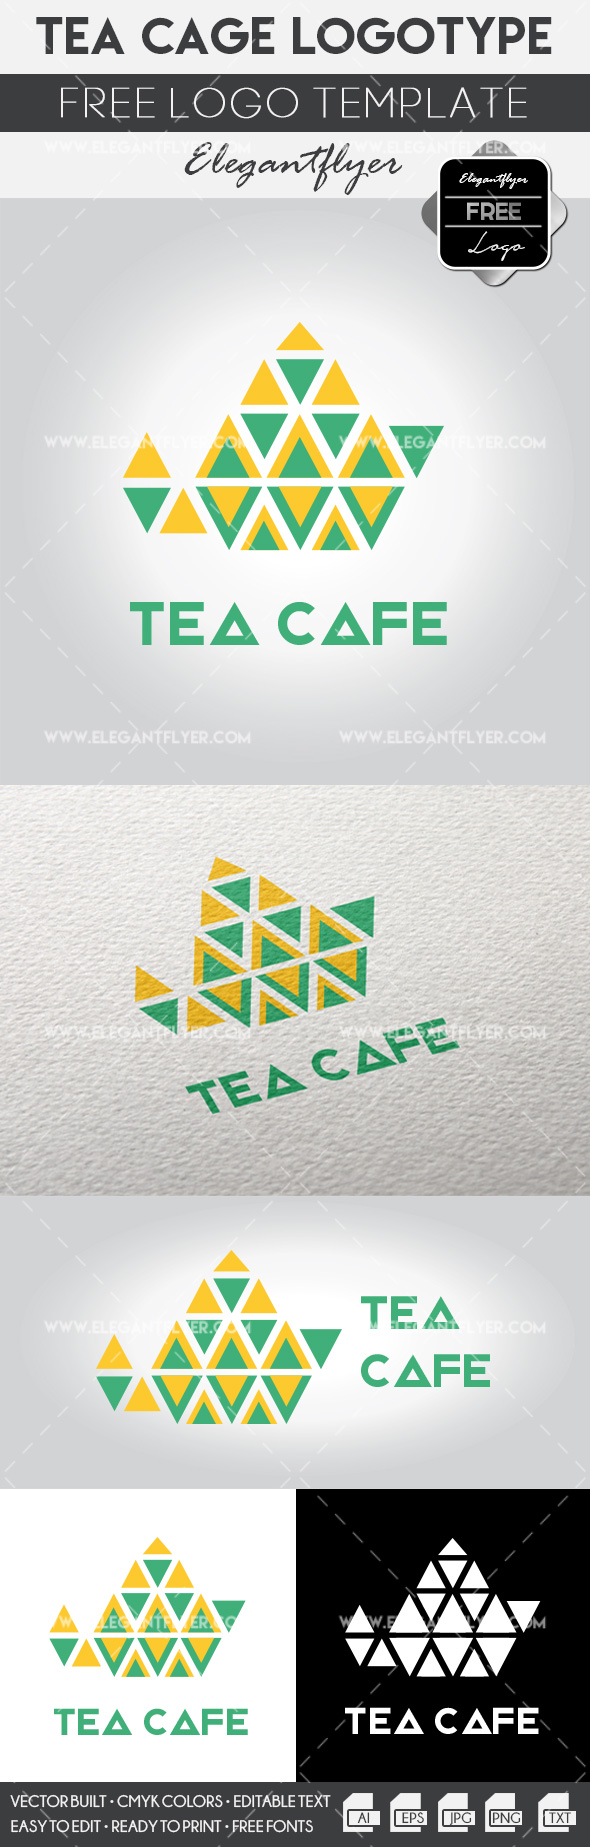 Tea cafe – Free Logo Template